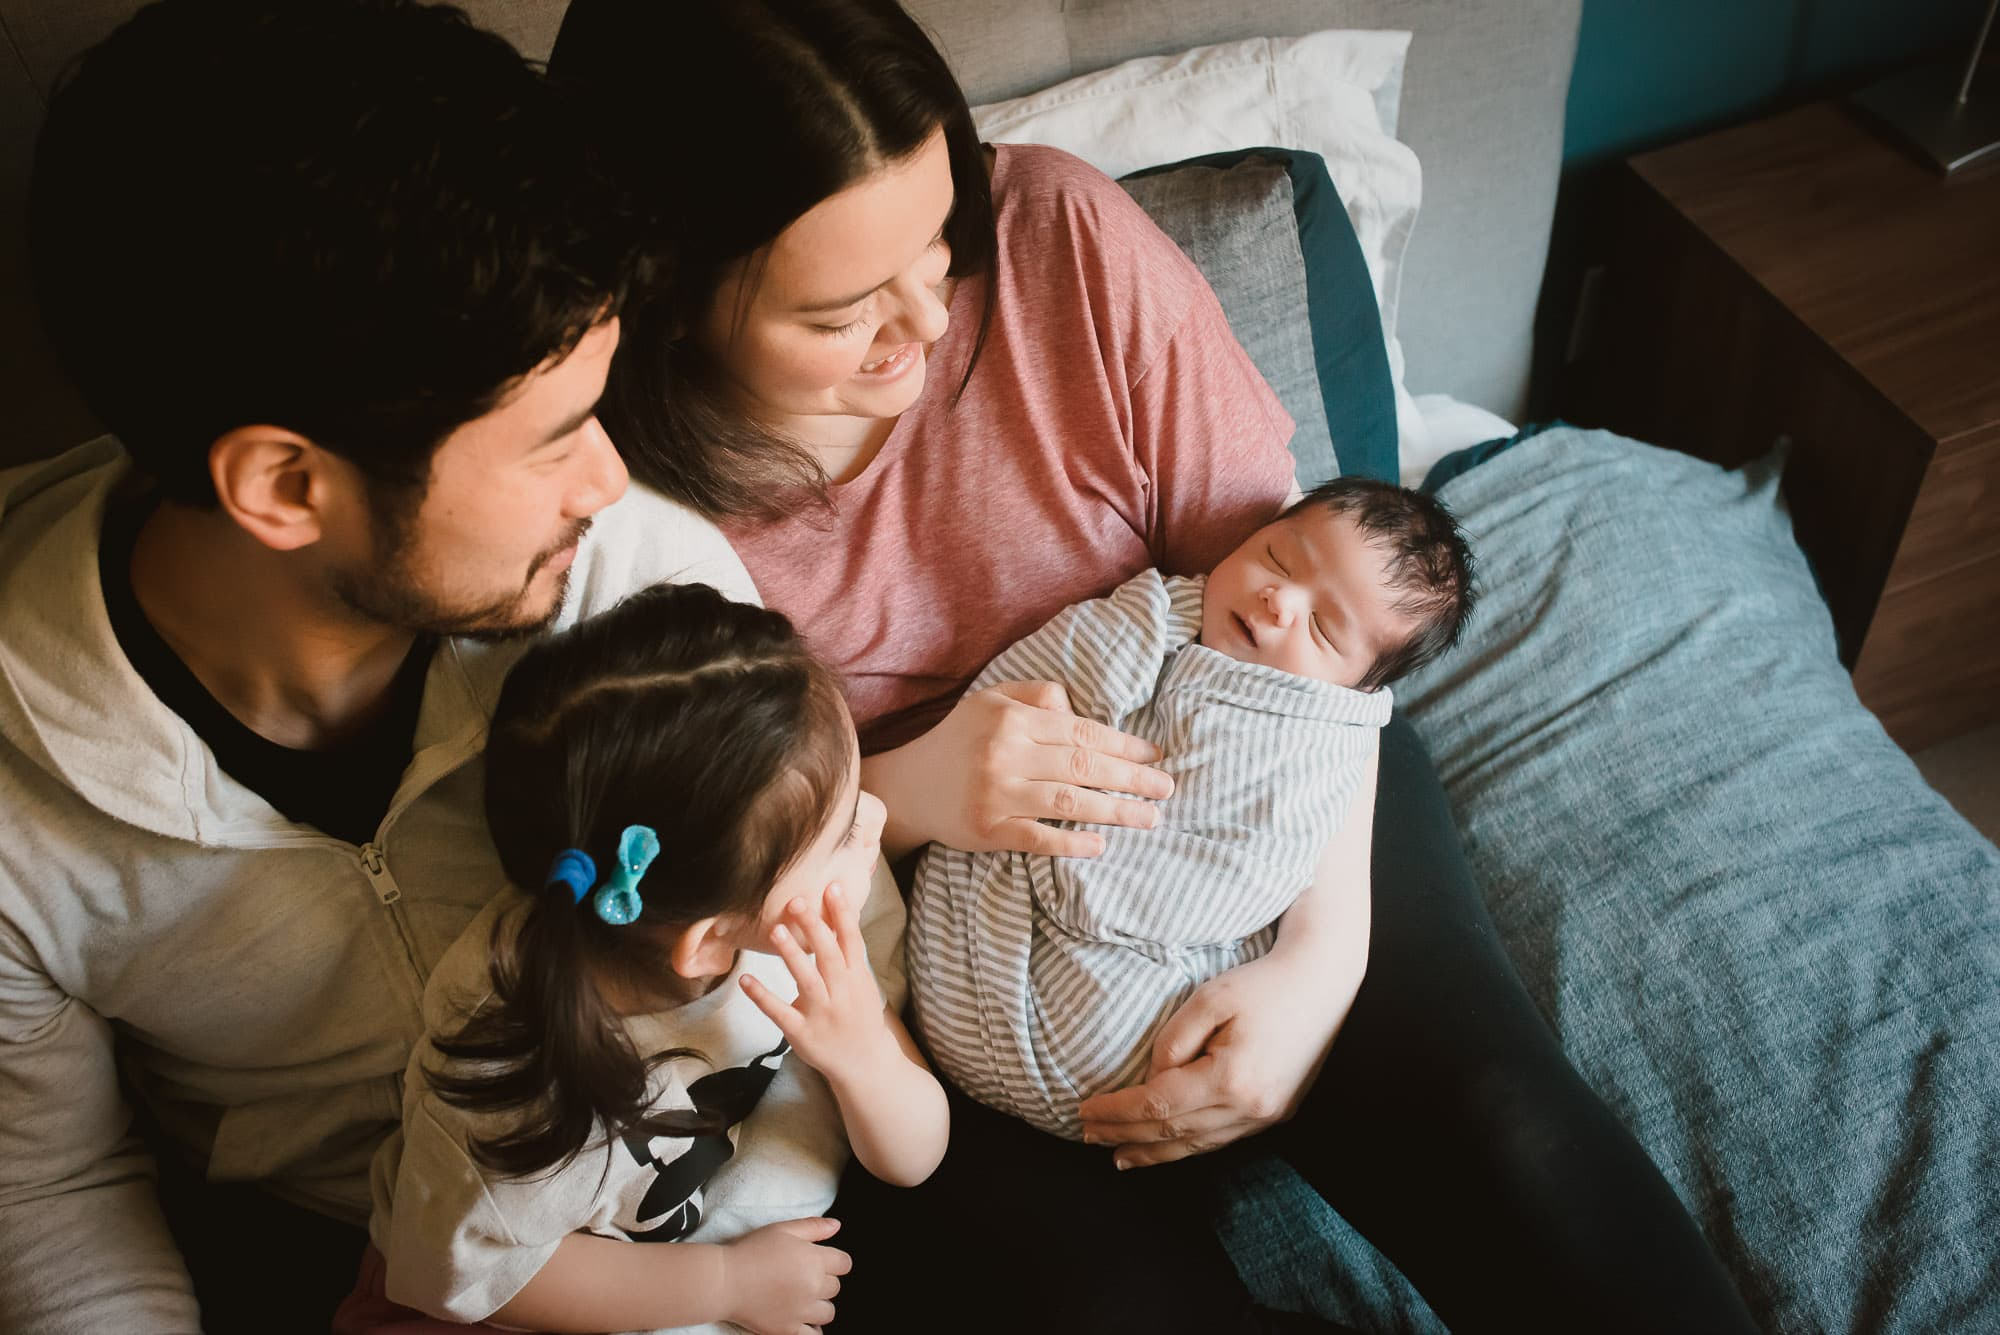 port coquitlam family looks at newborn baby during photo shoot